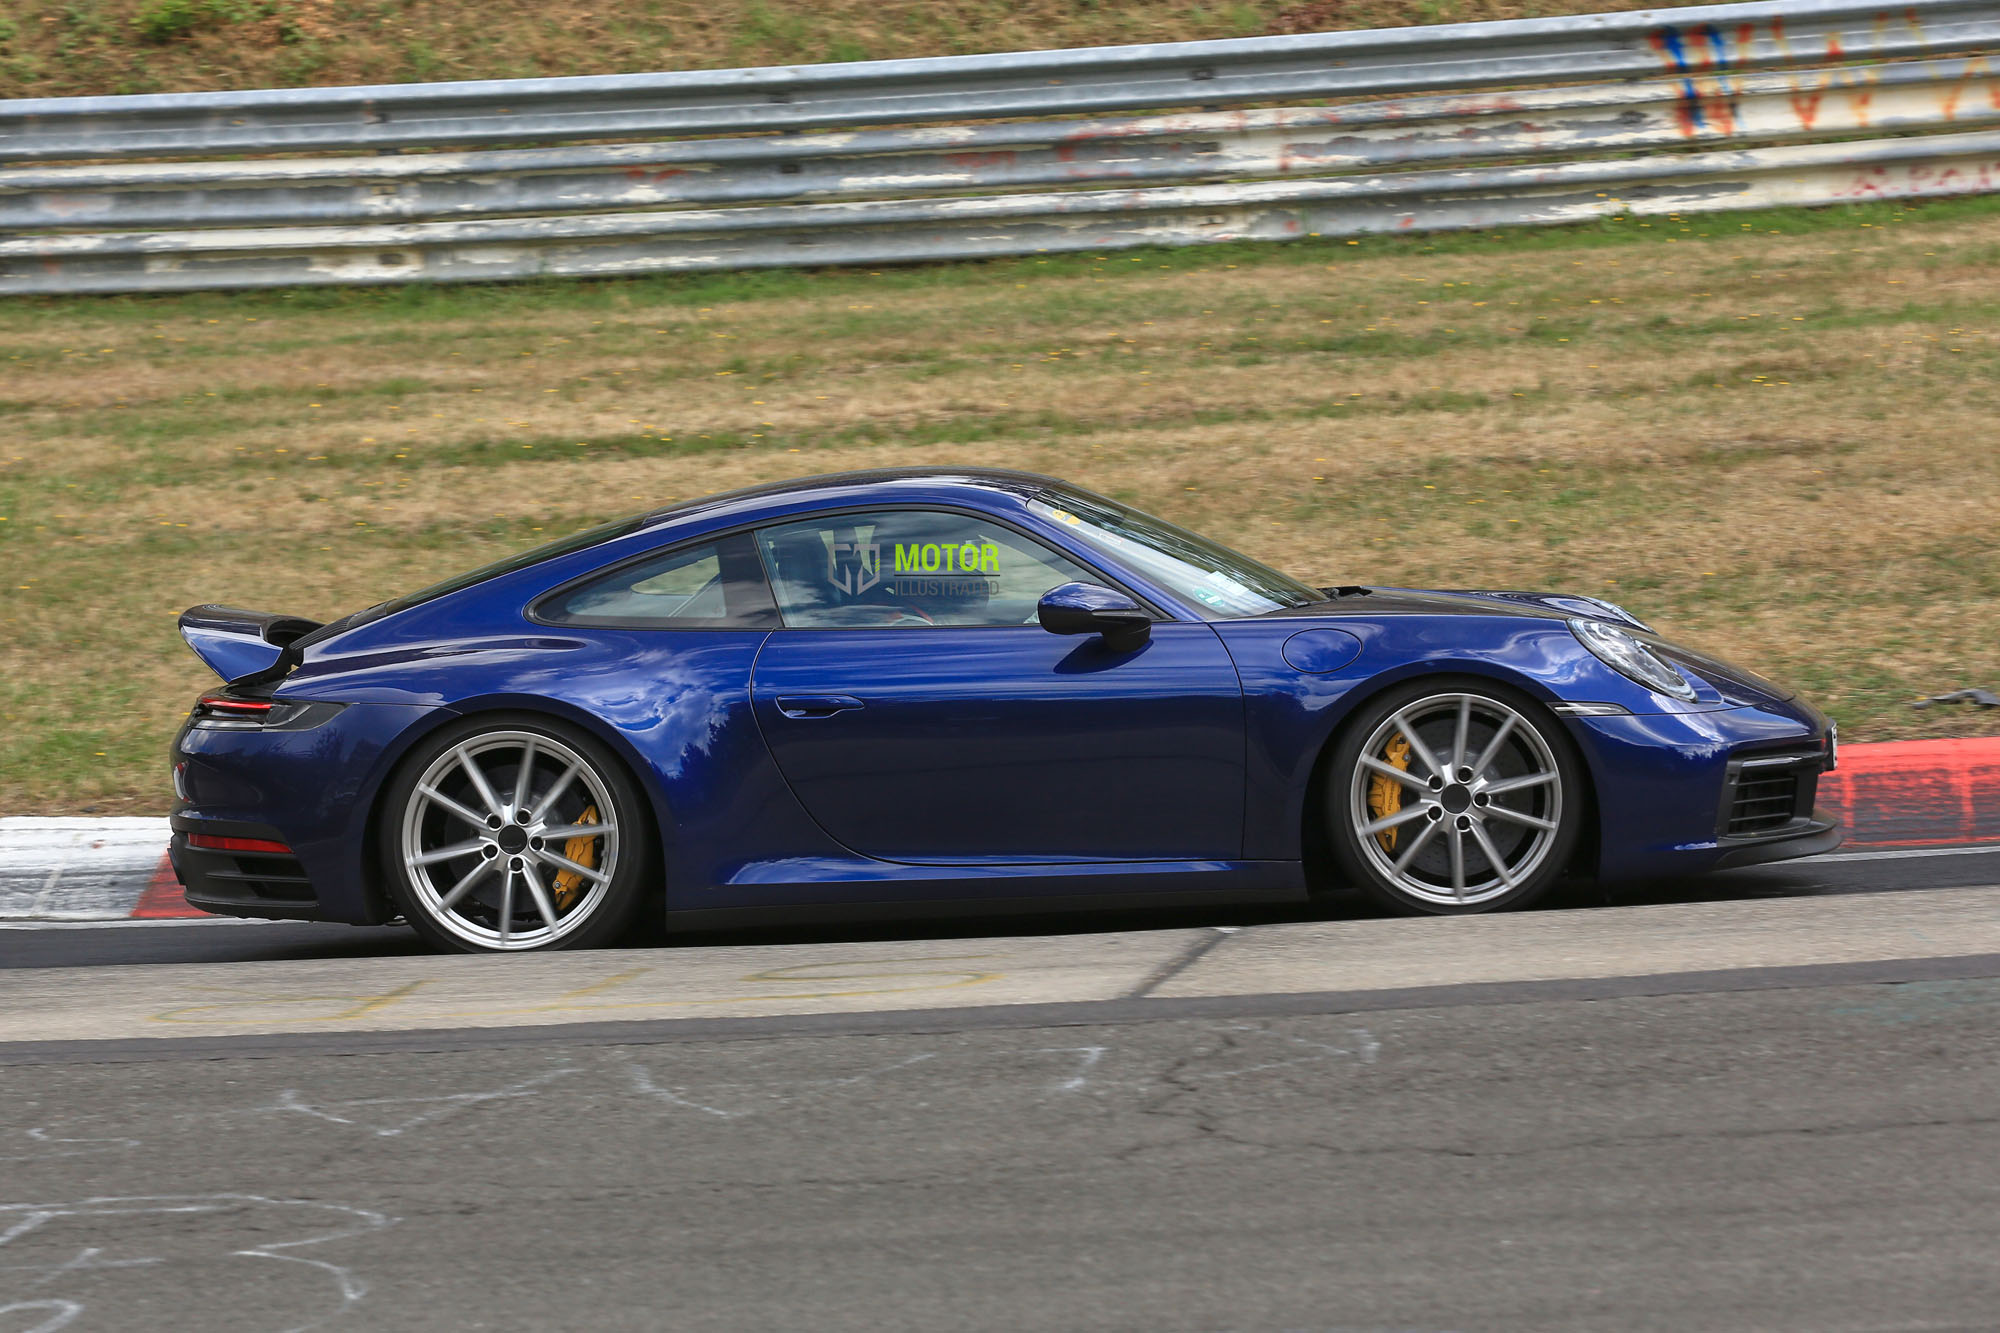 Here S The New 2019 Porsche 911 992 Motor Illustrated